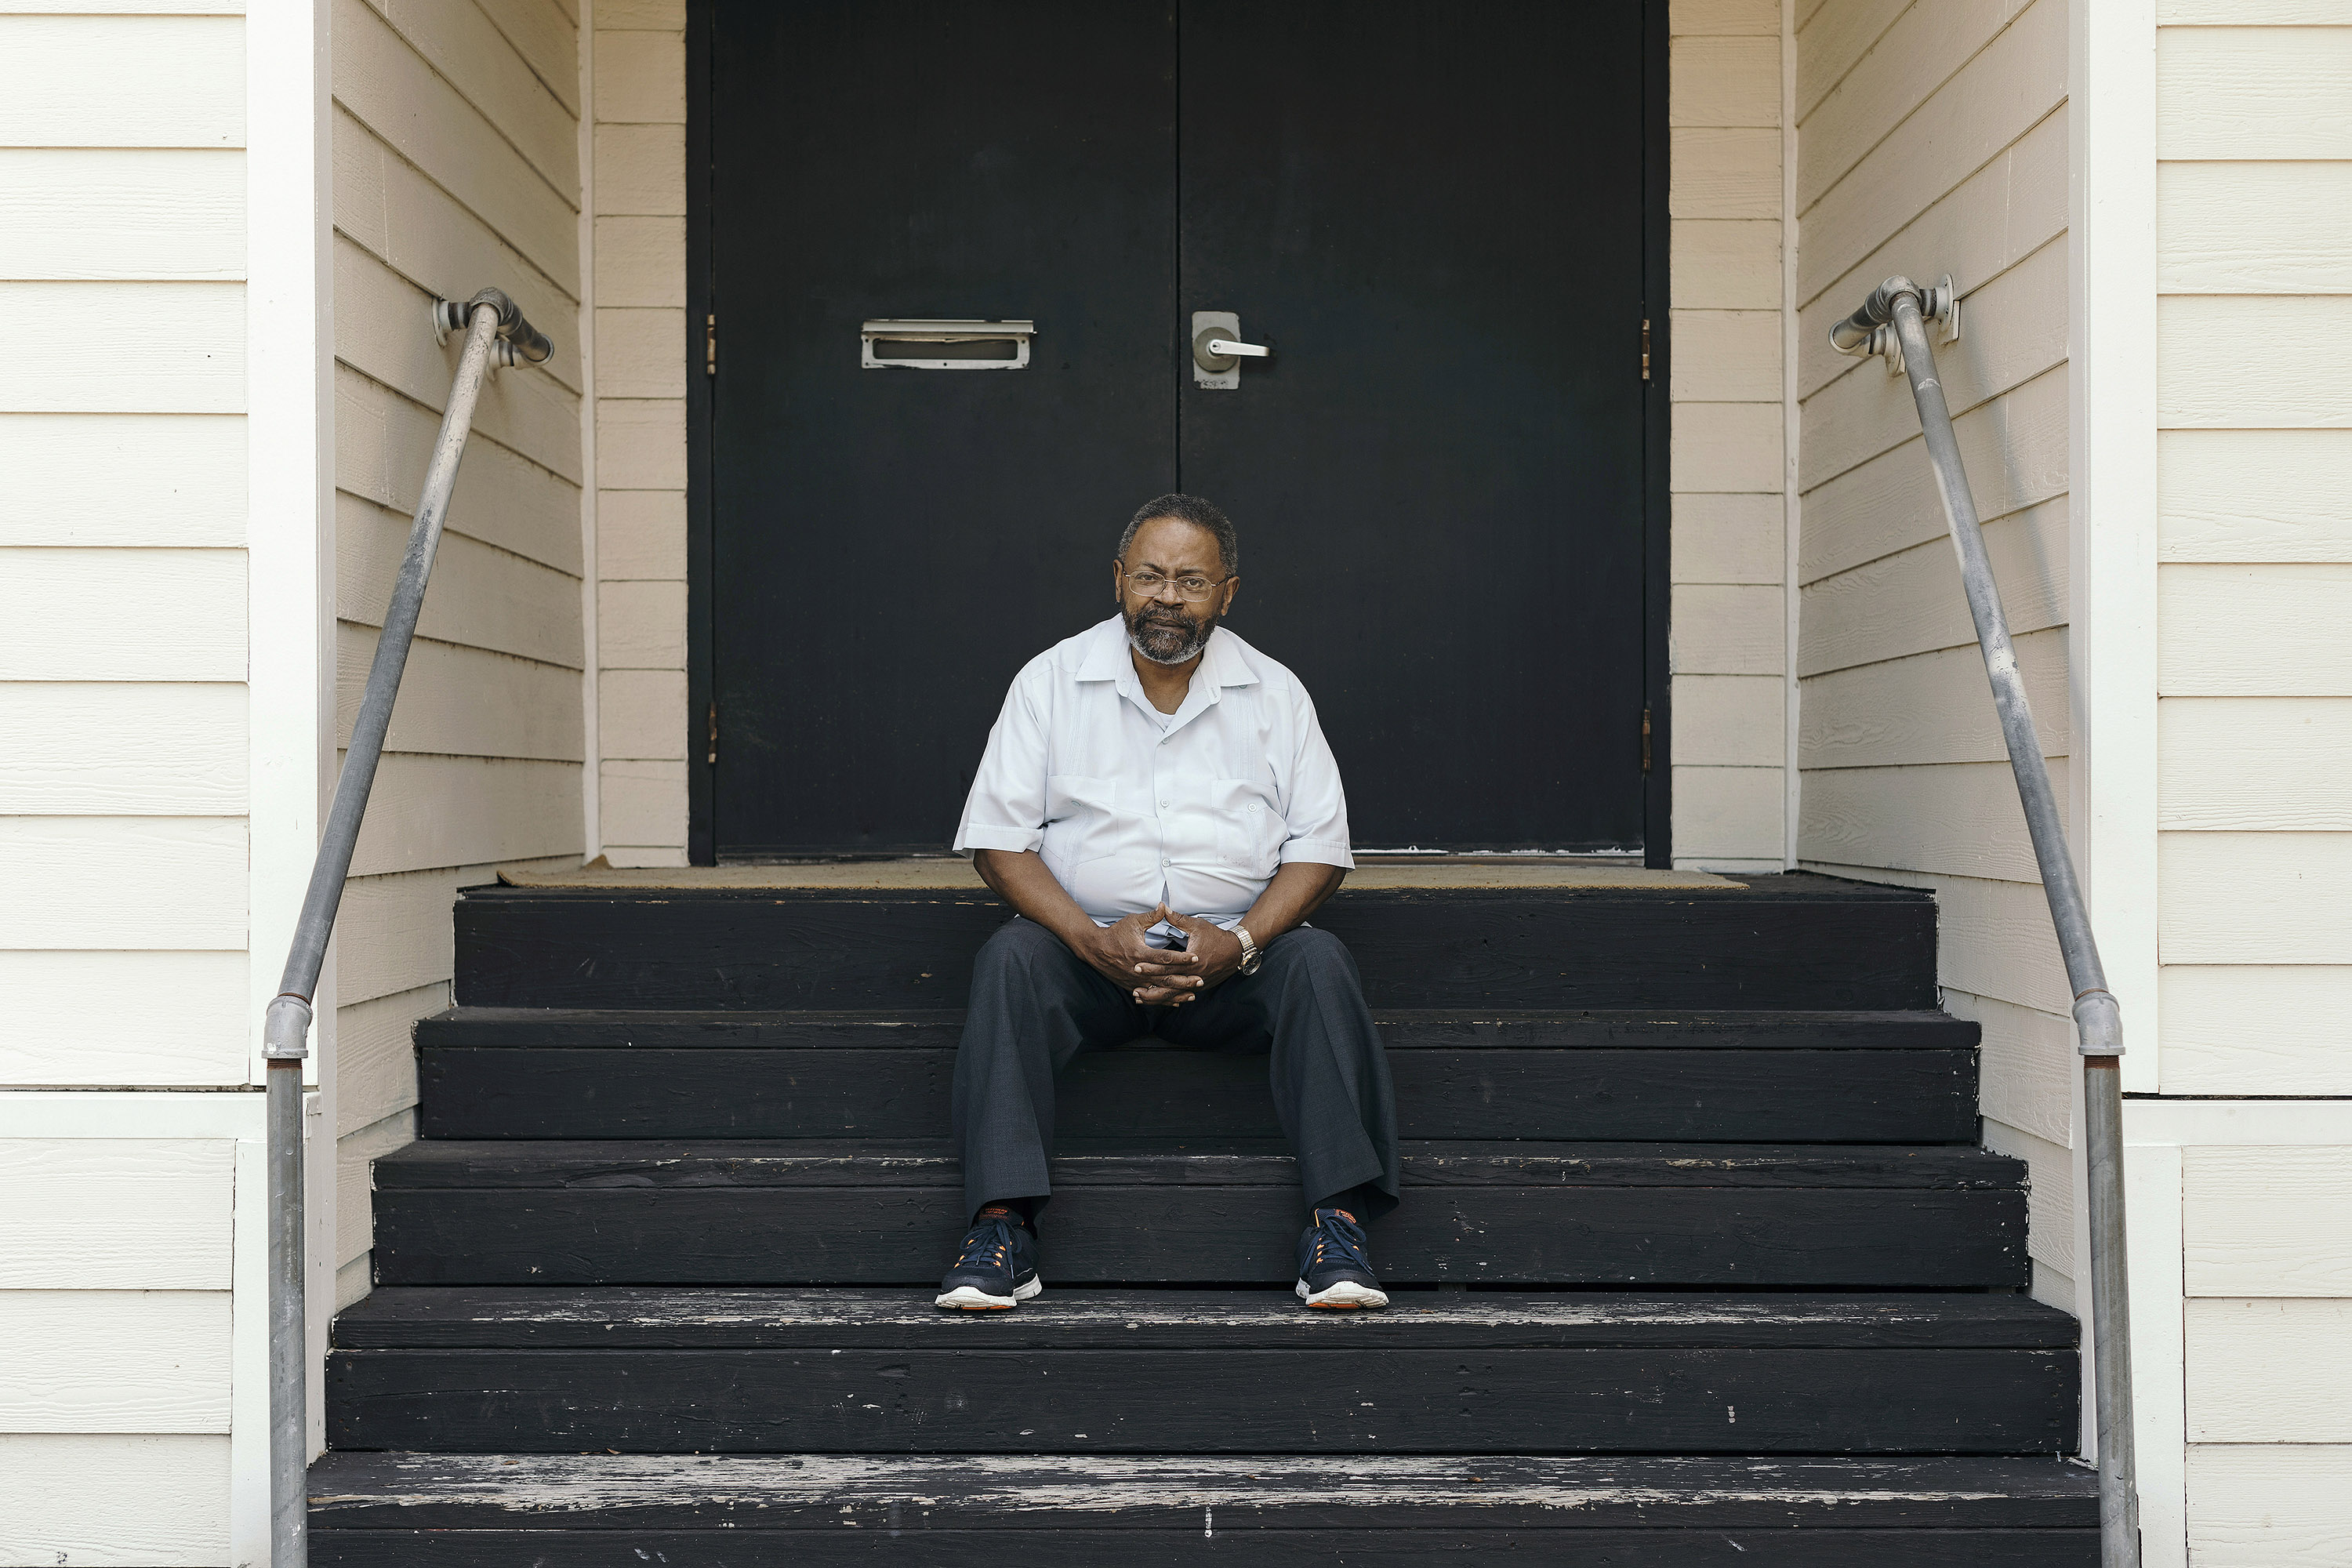 Reverend Roy L. Malveaux of Shining Star Baptist Church sits on the steps of his church, Tuesday, June 6th, 2017 in Beaumont, Texas.Todd Spoth for The Intercept